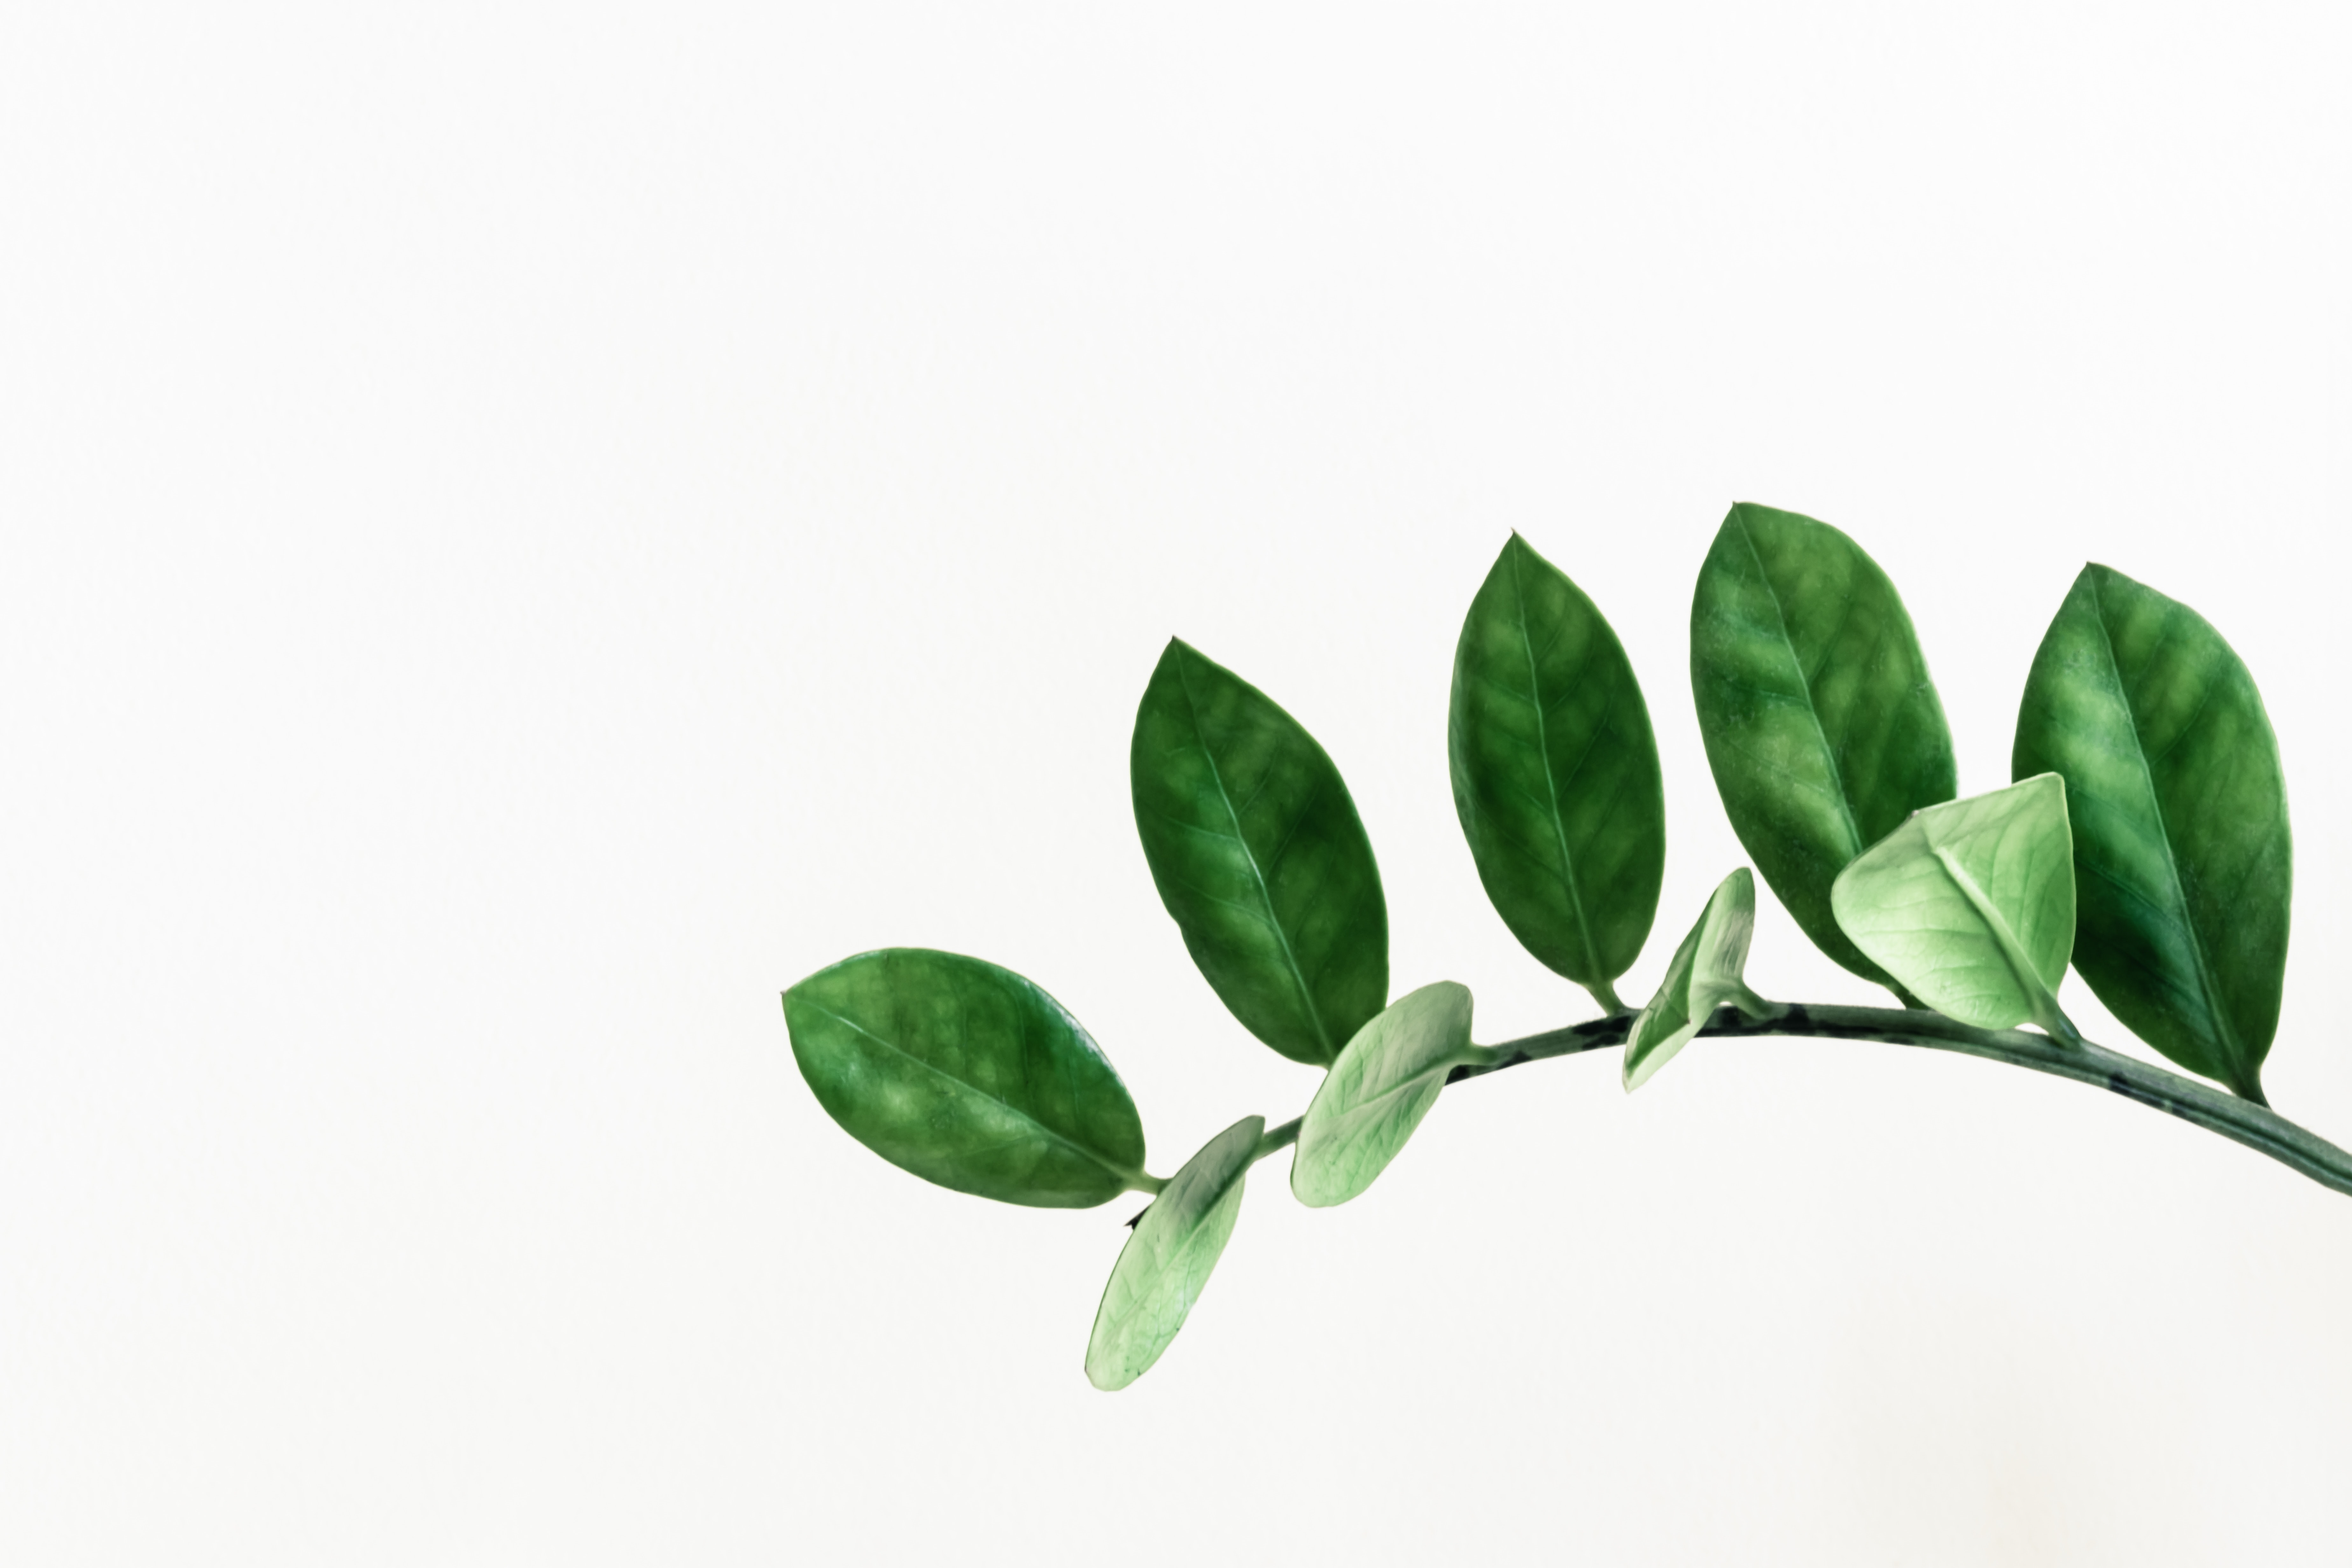 green leafed plant clip art